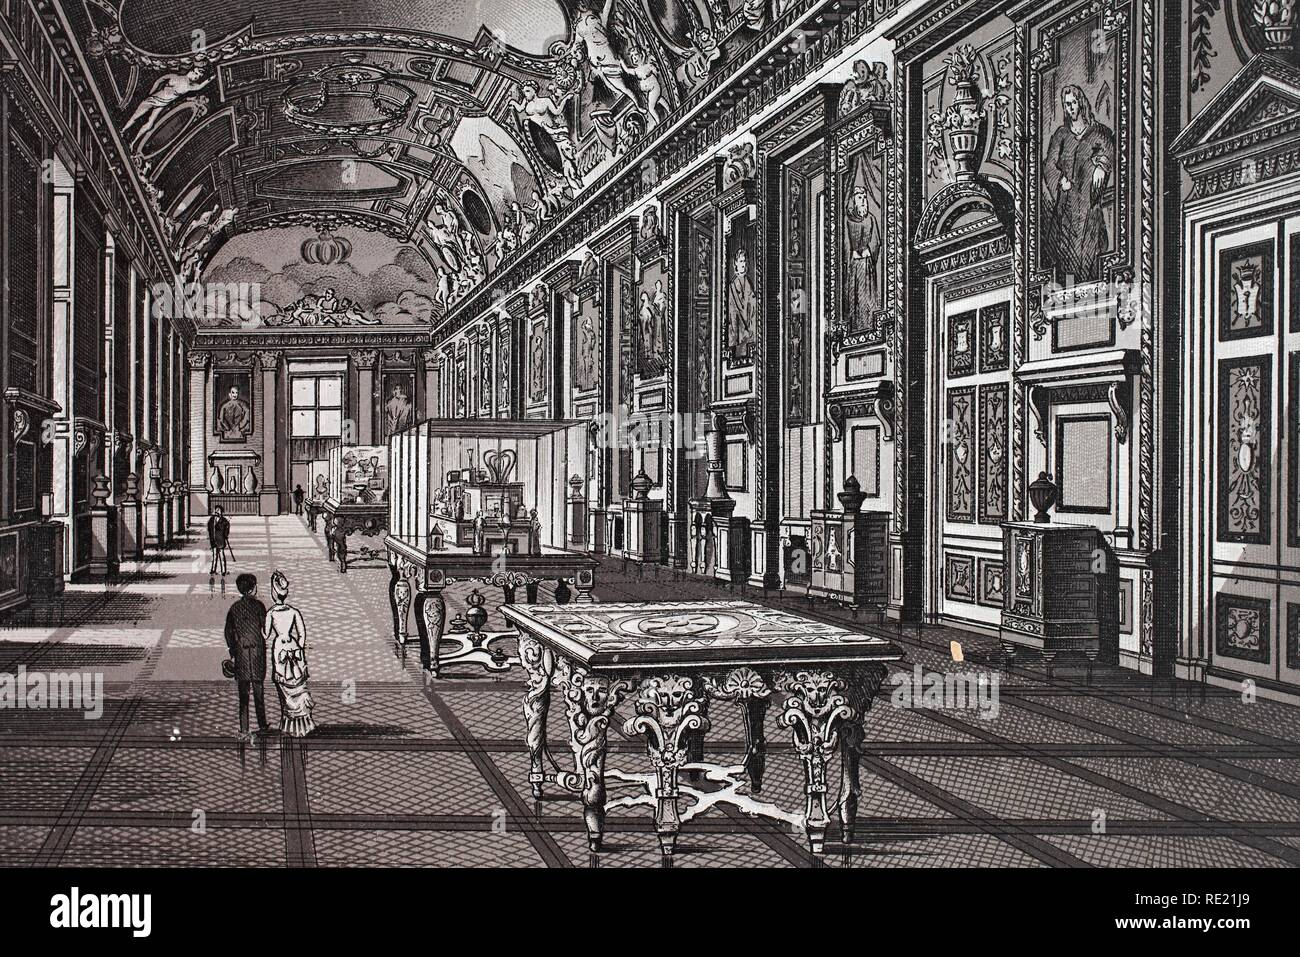 Louvre, Galerie d'Apollon, historic copper-plate etching, from around 1890, Neal's, Paris, France, Europe - Stock Image